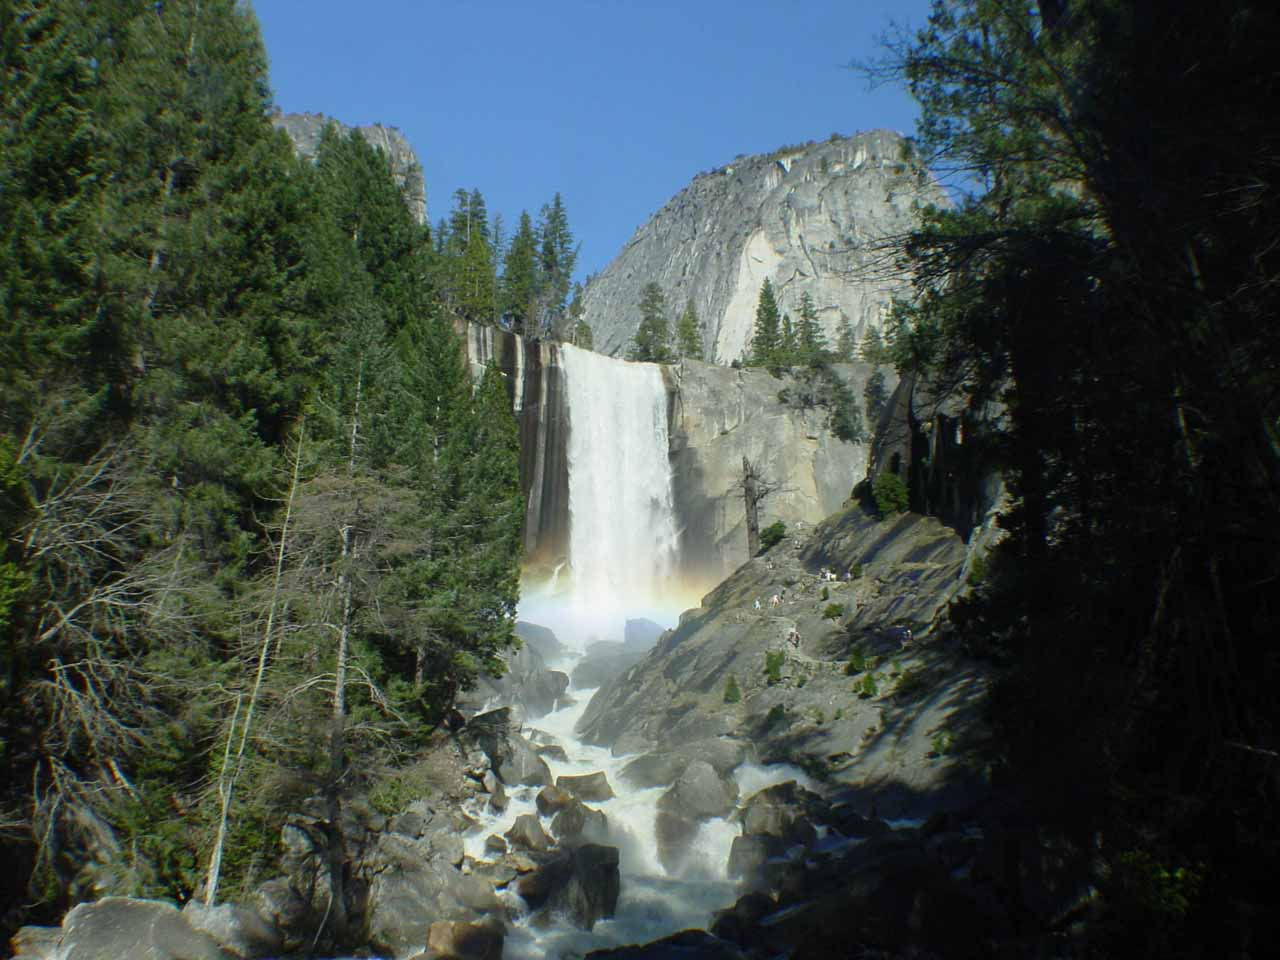 Looking up towards Vernal Fall with rainbow at its base